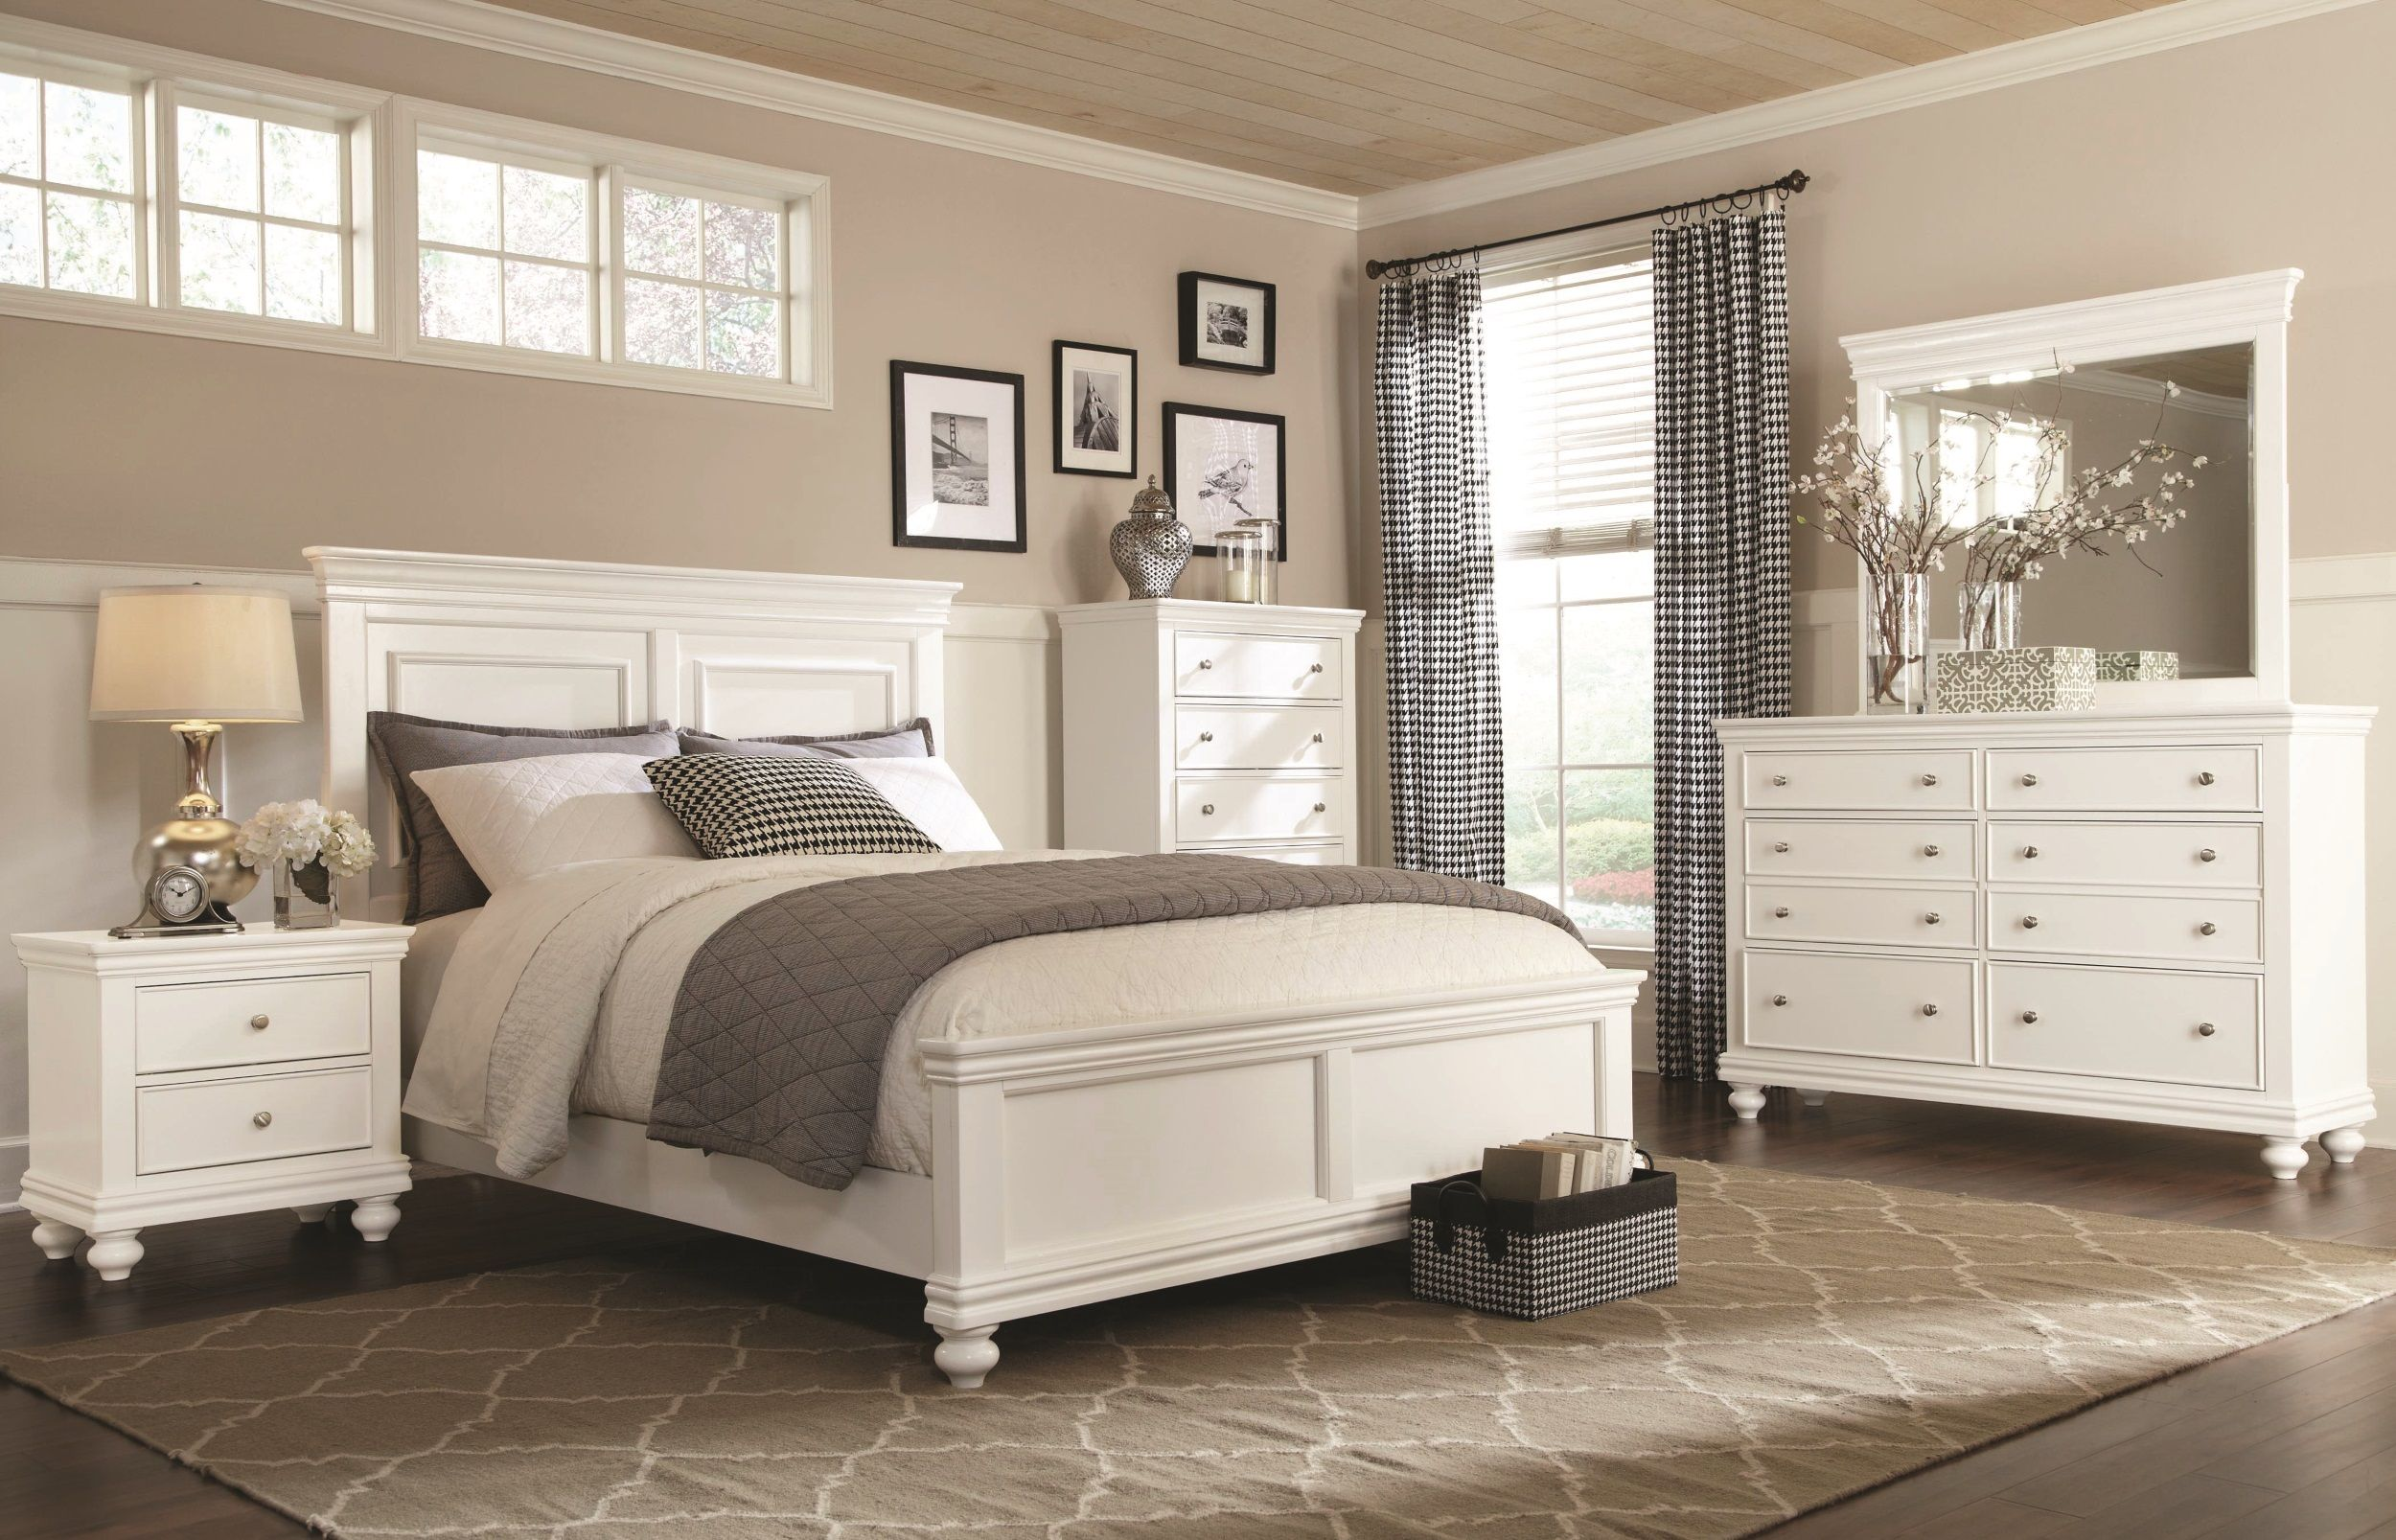 design set signature by birlanny room silver bed ashley upholstered panel bedroom